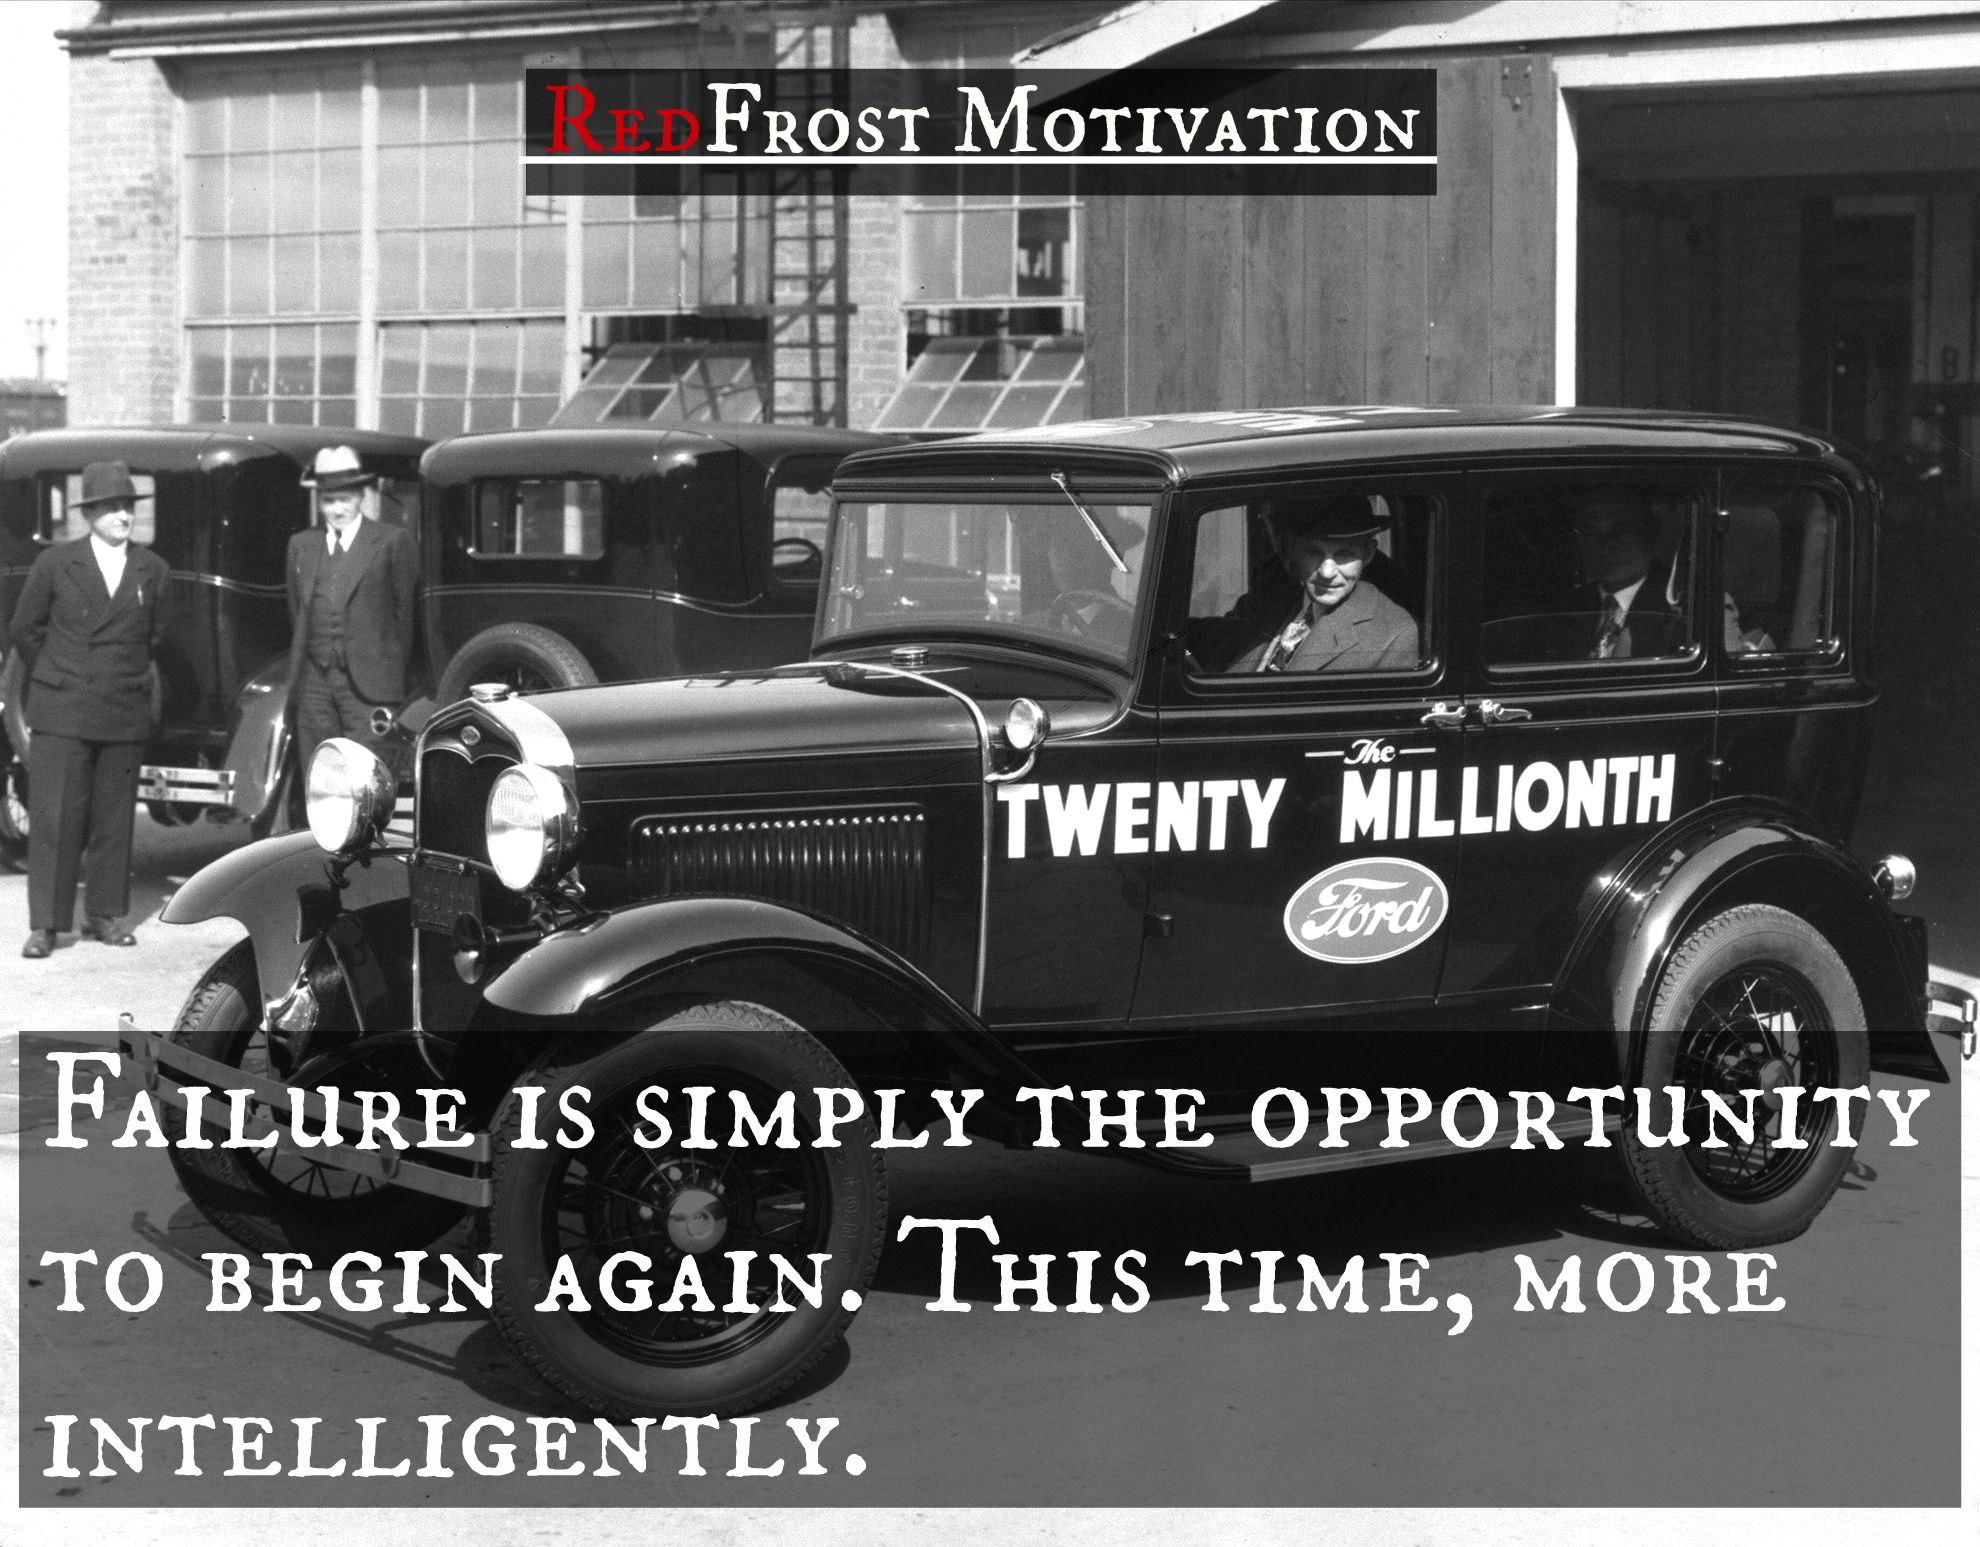 Pin By Susan Becker On Motivation Ford Classic Cars Classic Cars Ford Models